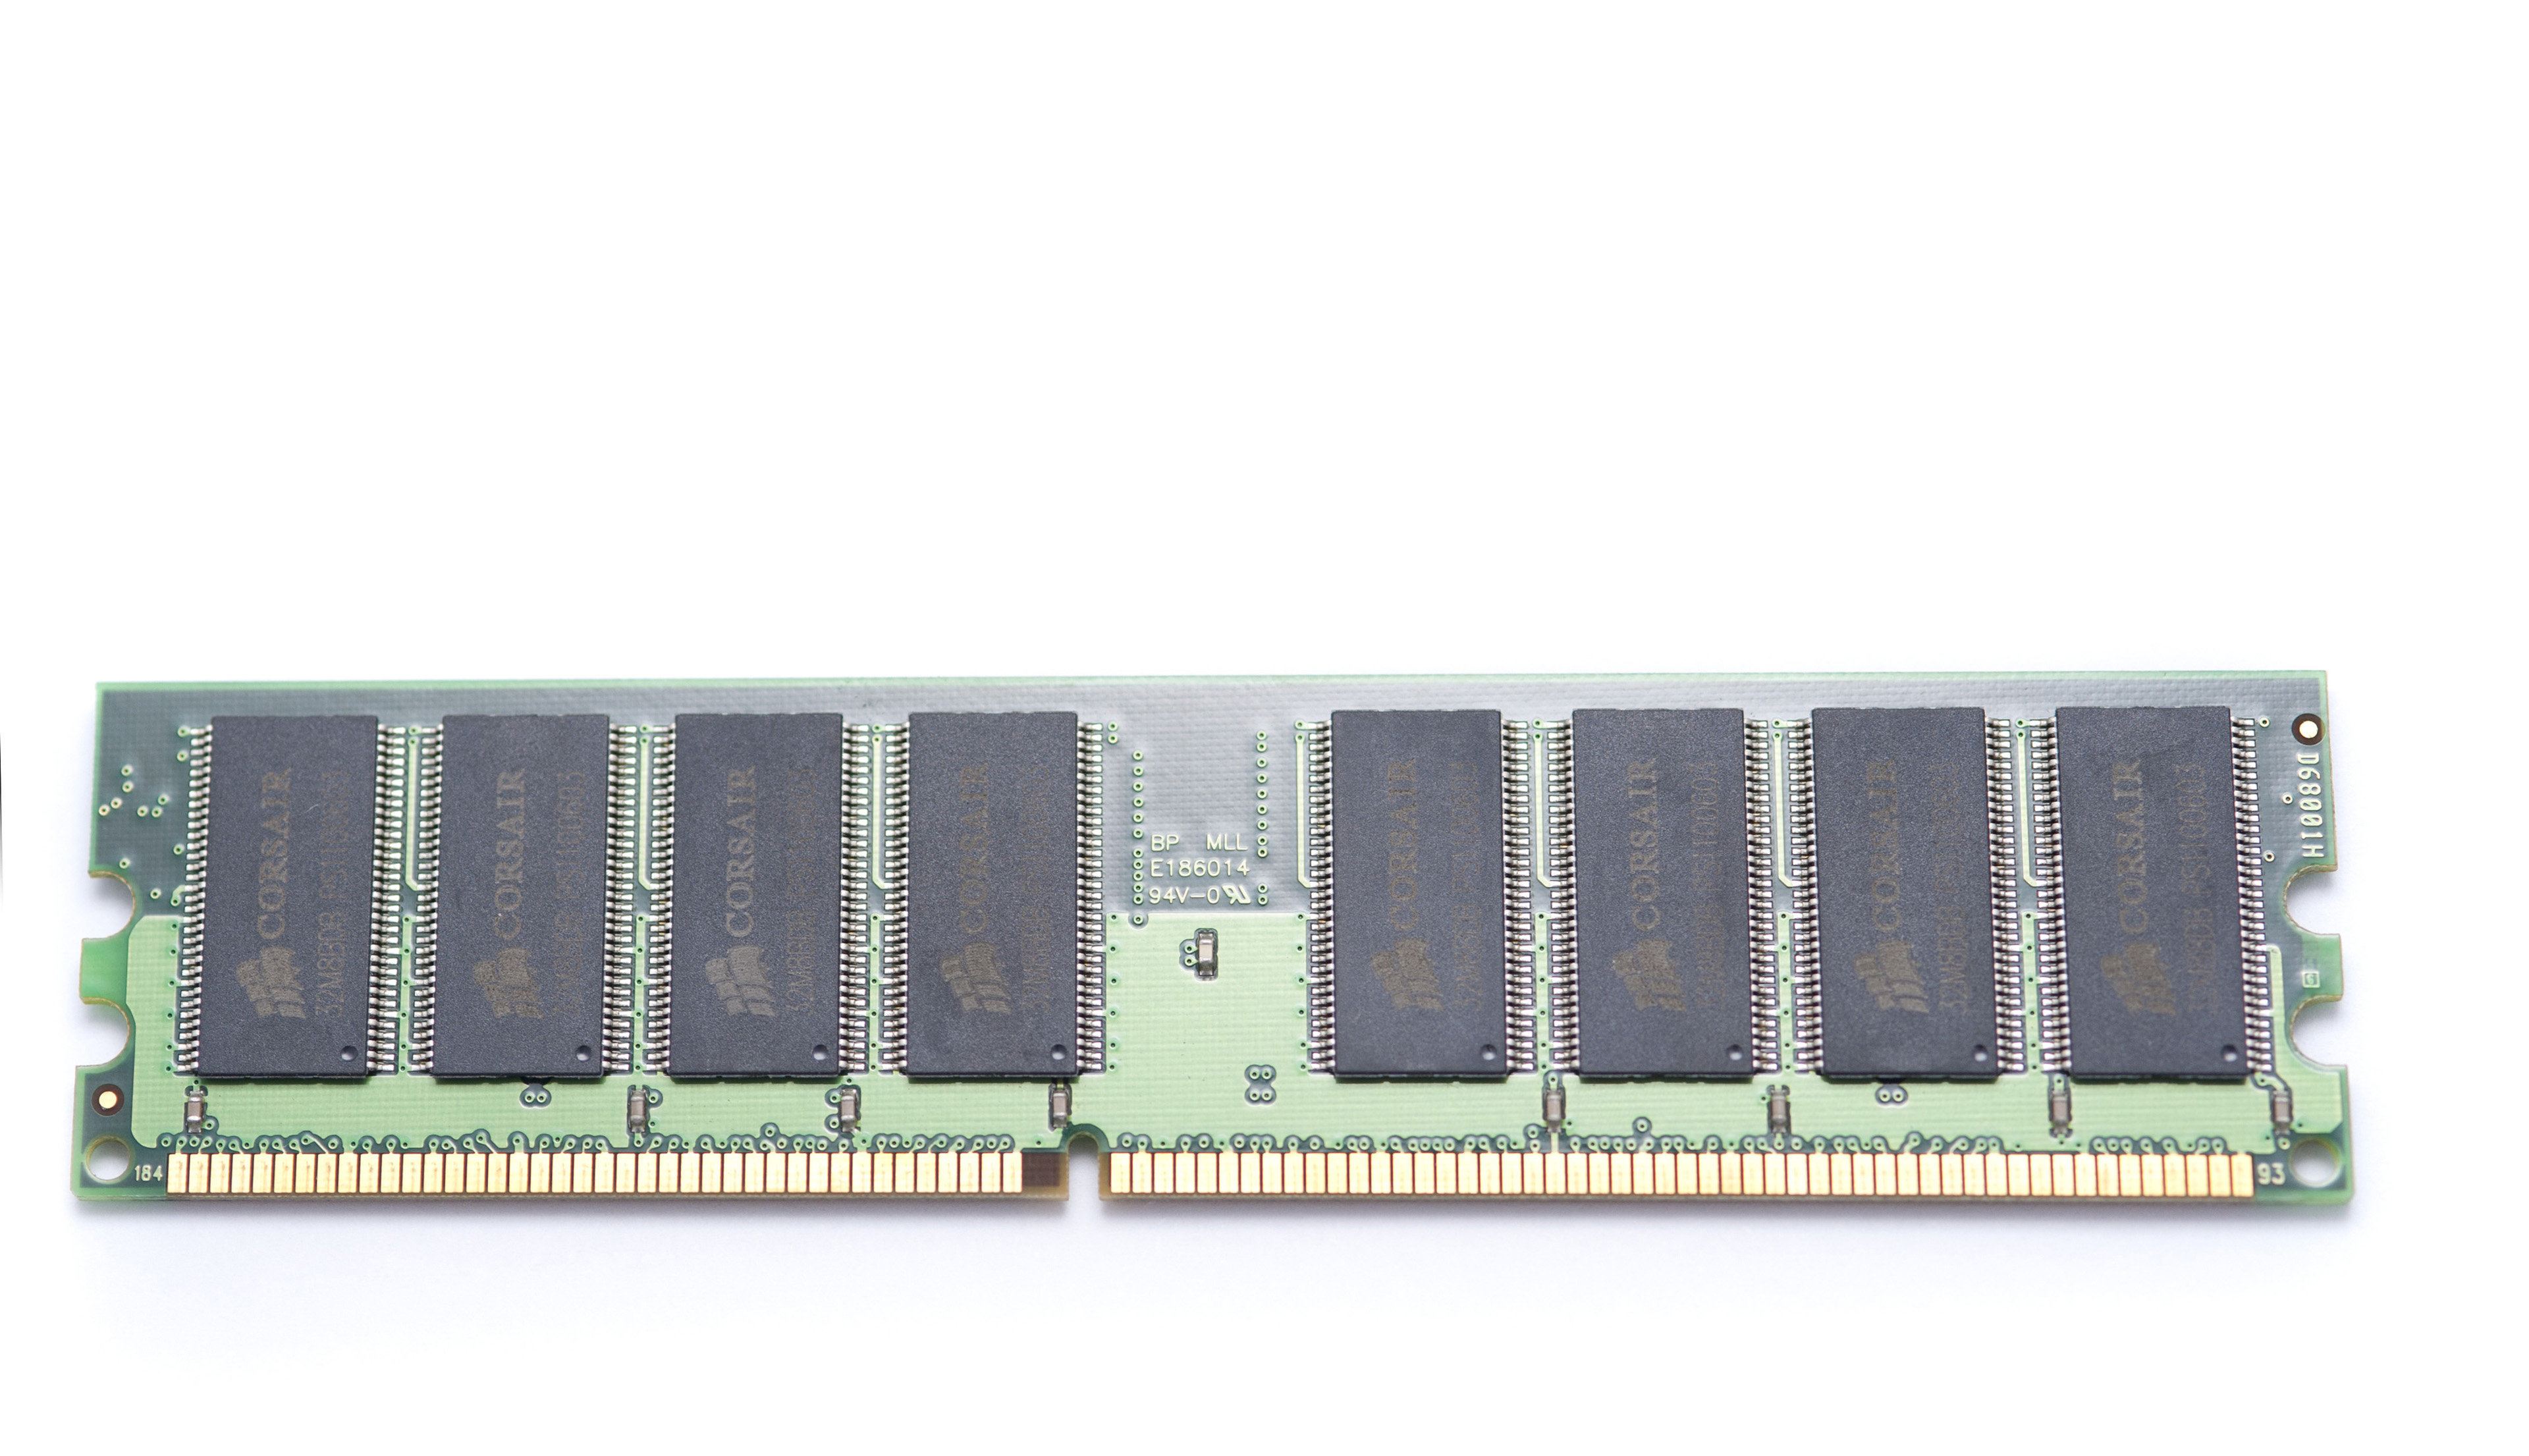 Random Access Memory - Close up Computer Primary Memory Stick Isolated on White Background.